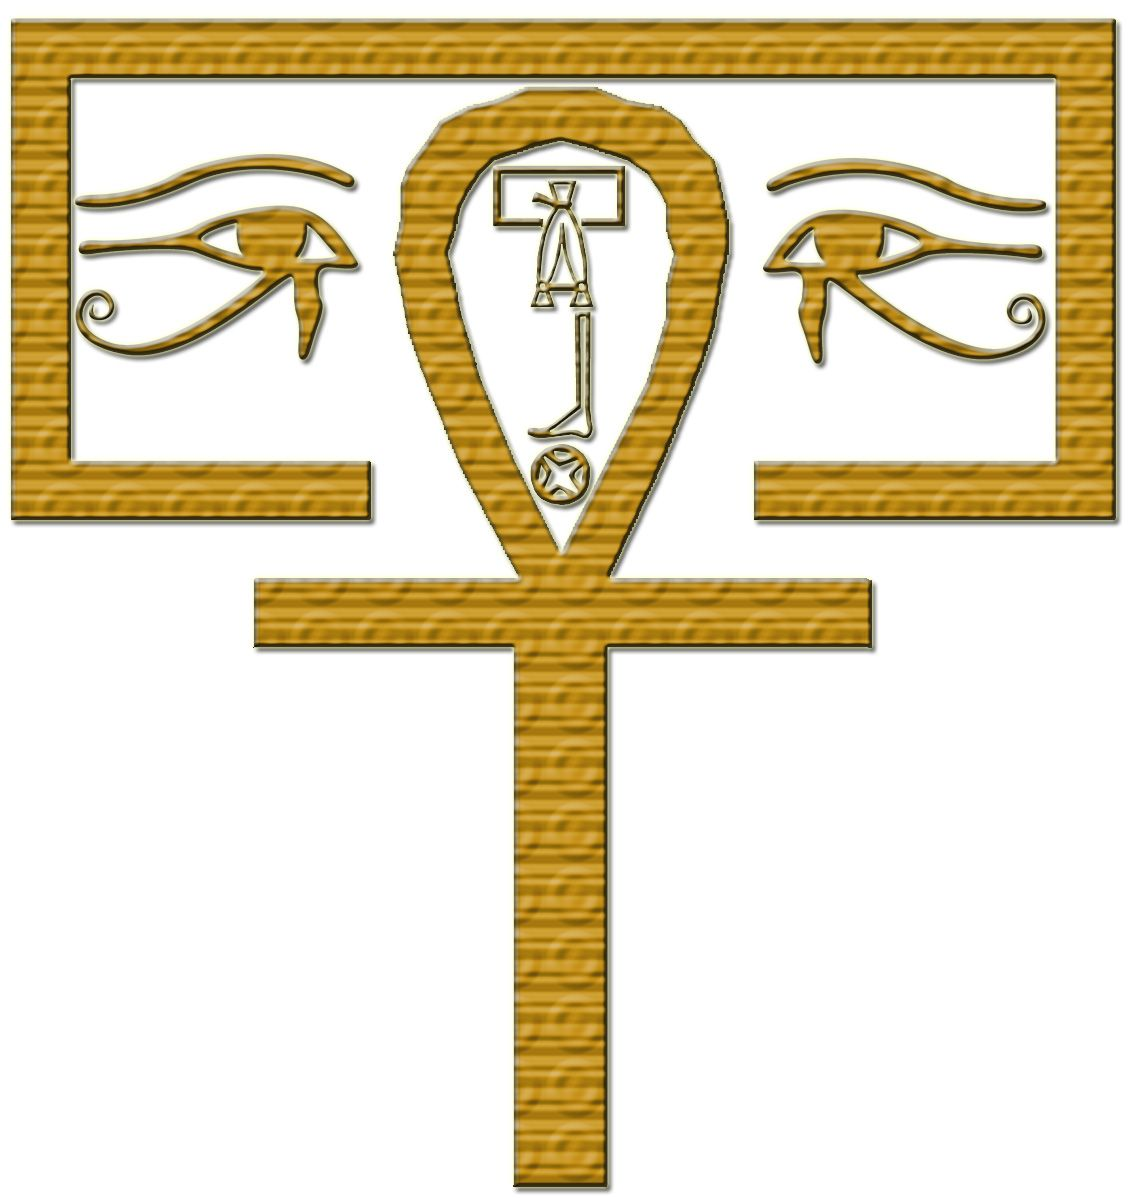 The Per Ankh – House of Life, the center of knowledge and learning